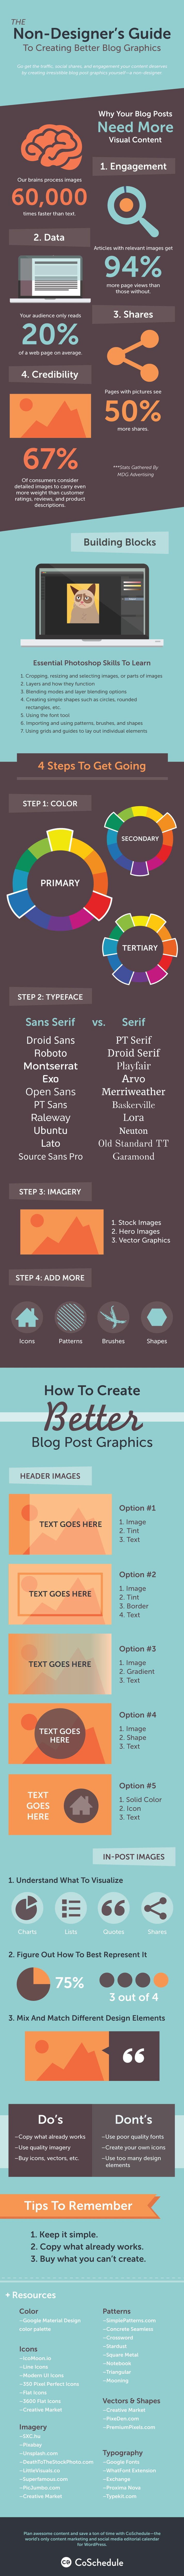 How To Make The Best Blog Graphics (For Non-Designers)